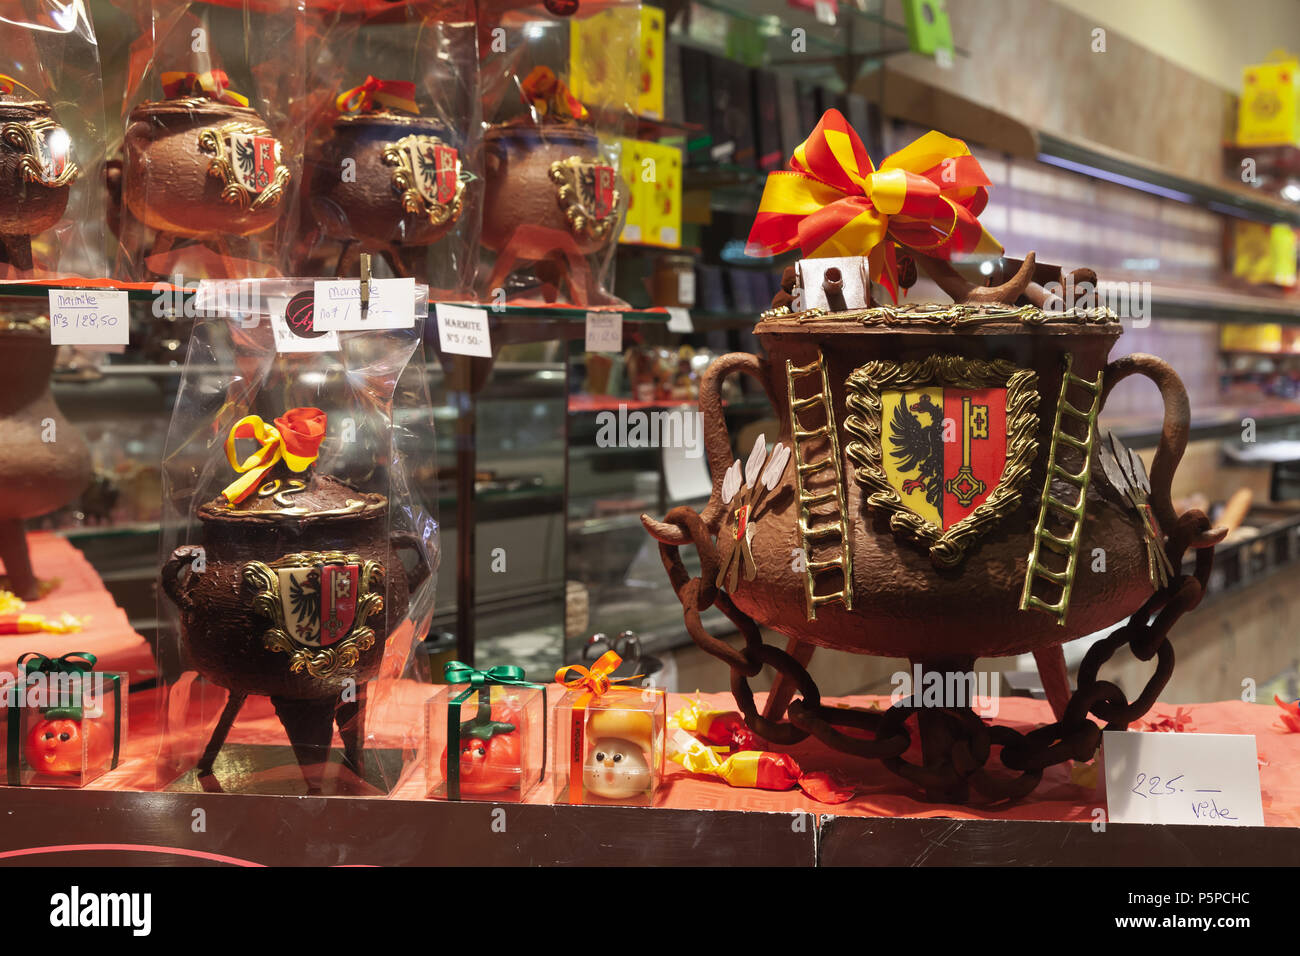 Geneva, Switzerland - November 24, 2016: window of chocolate shop in Geneva selling large marmites filled with marzipan vegetables and candies wrapped Stock Photo